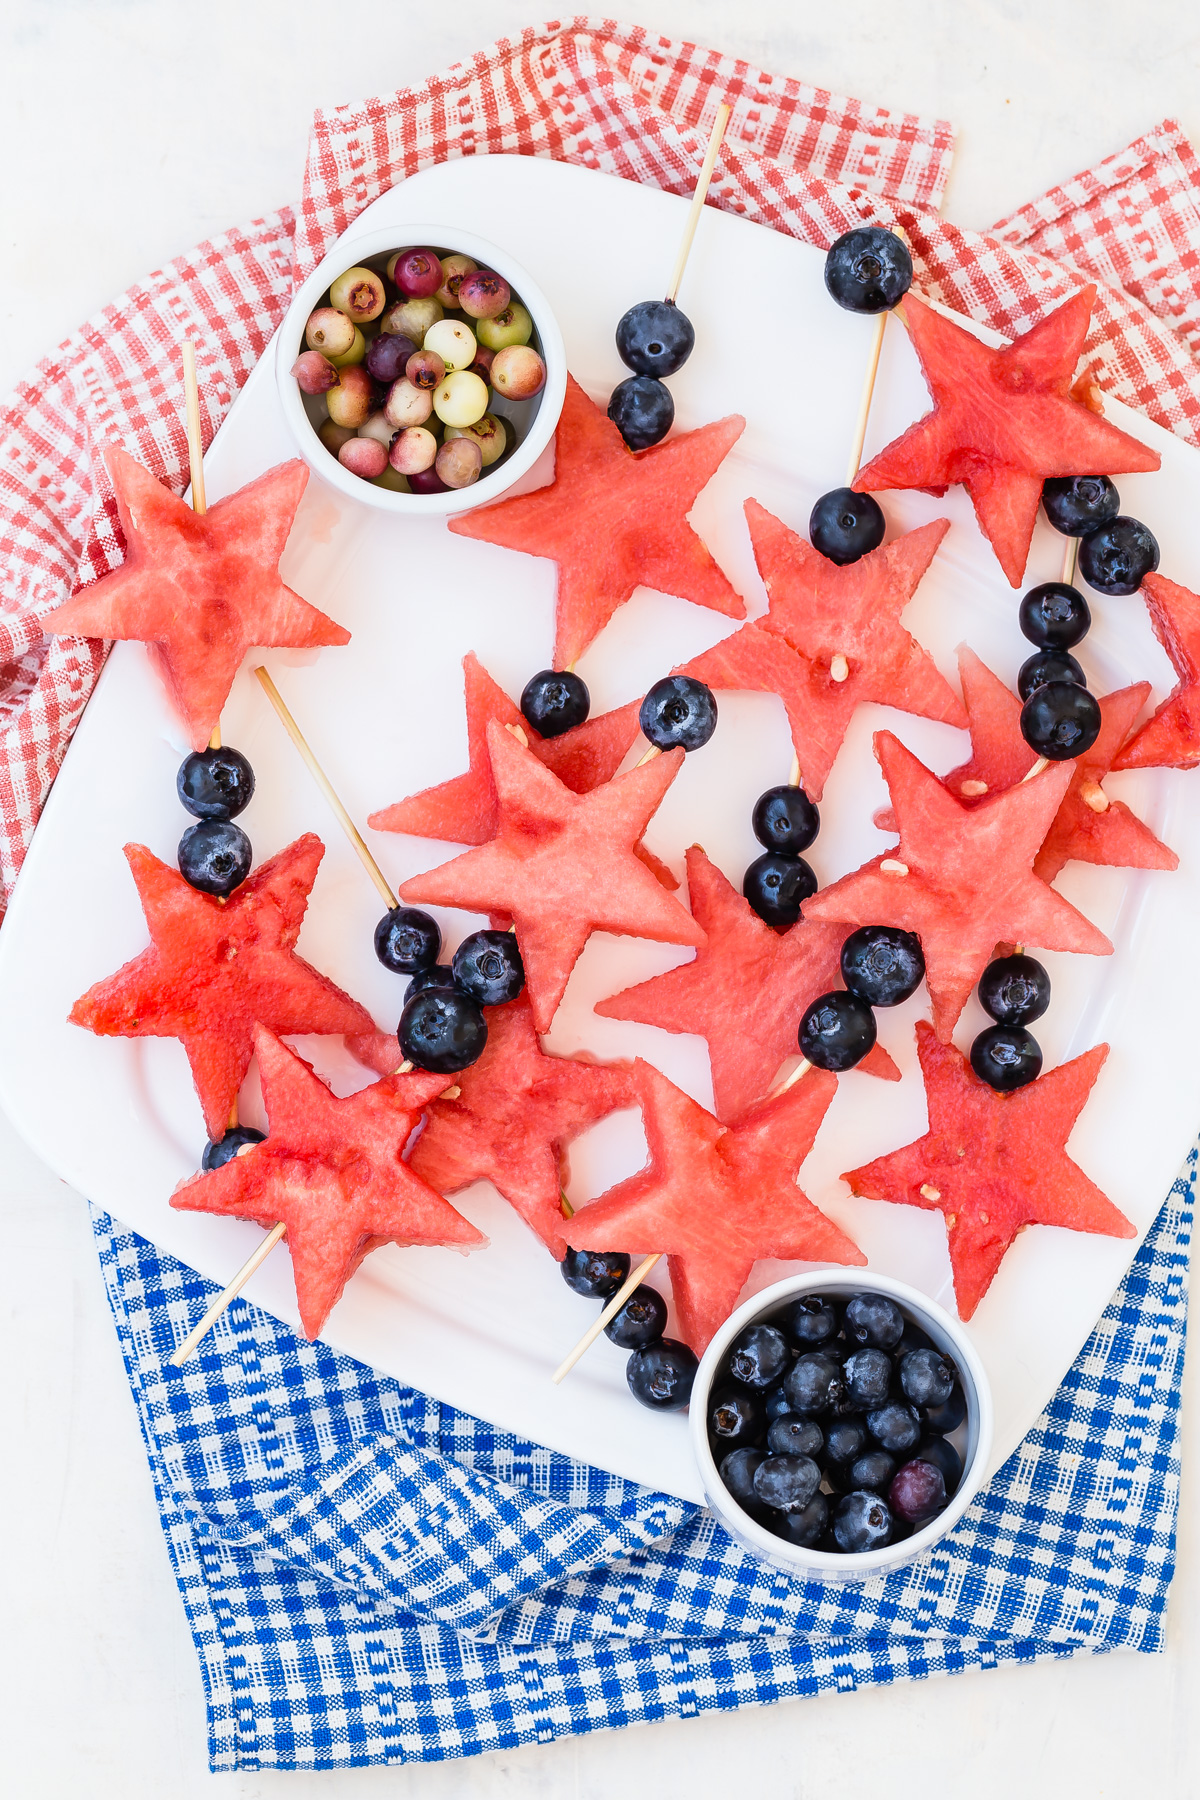 Abracadabra, Make Fruit Disappear! Thatu0027s Exactly What Happened The Day I  Made These Independence Day Inspired Treats For The Kids, Turning A Big  Dinner I ...